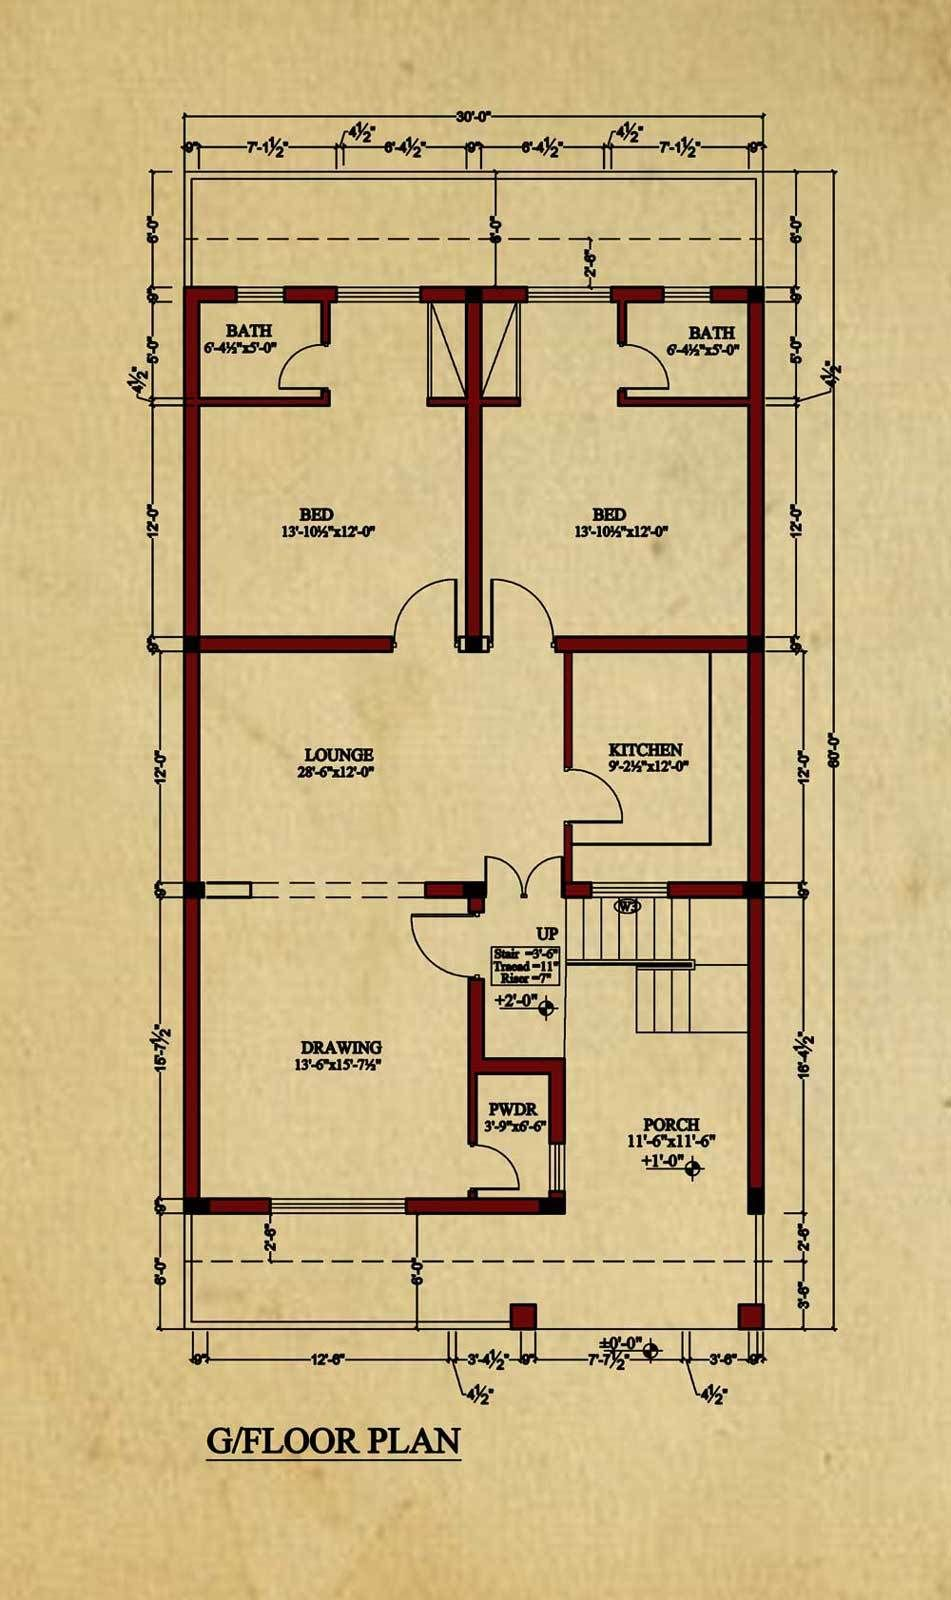 House floor plan by image concept  marla also rh pinterest